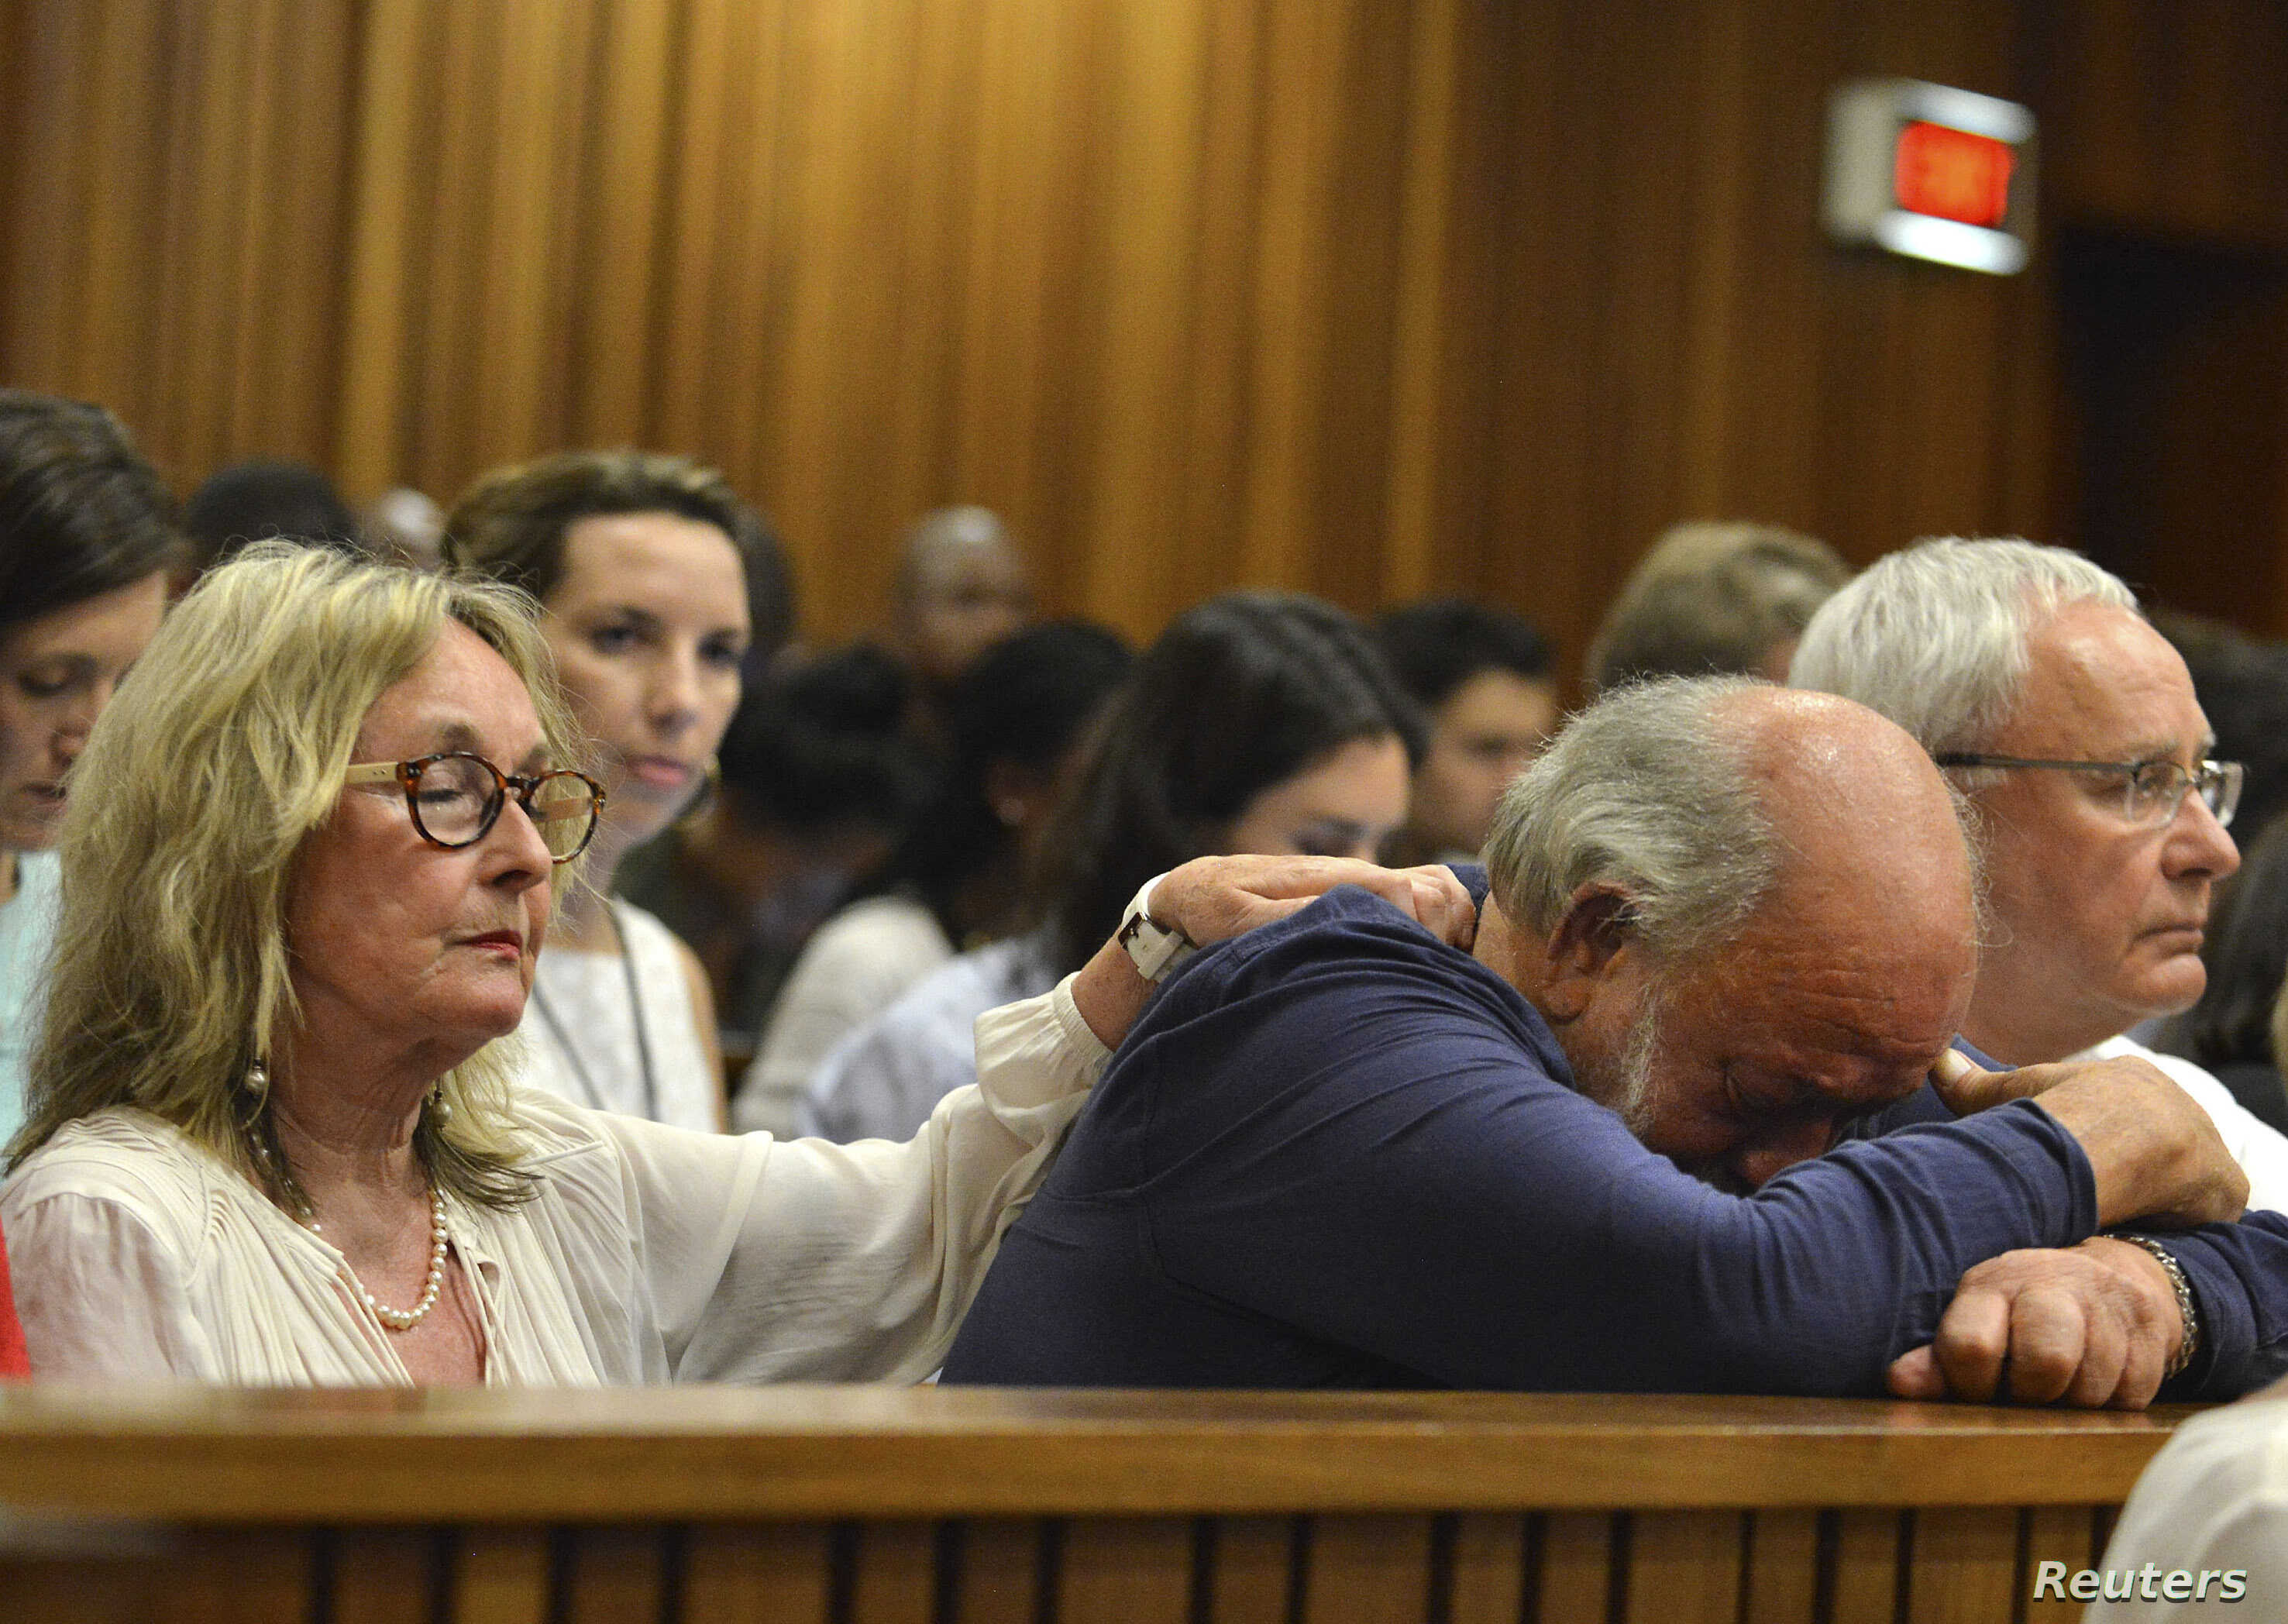 Barry Steenkamp, father of Reeva Steenkamp, is consoled by his wife June Steenkamp during the sentencing hearing of Olympic and Paralympic track star Oscar Pistorius at the North Gauteng High Court in Pretoria, Oct. 15, 2014.